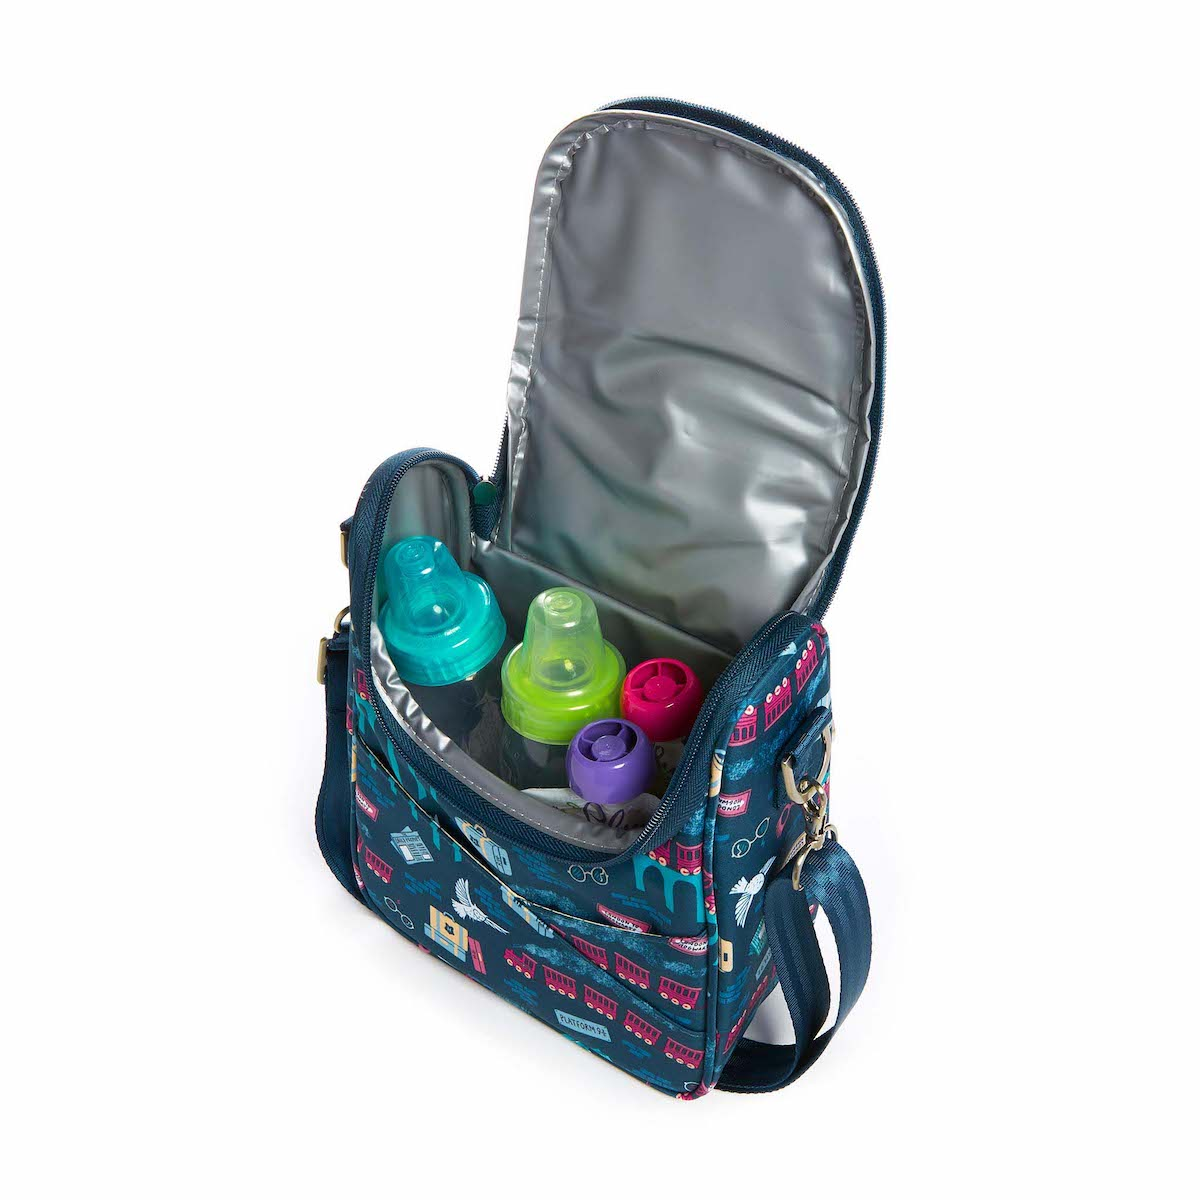 The Be Cool bag is perfect for keeping babies' bottles and lunches cool.